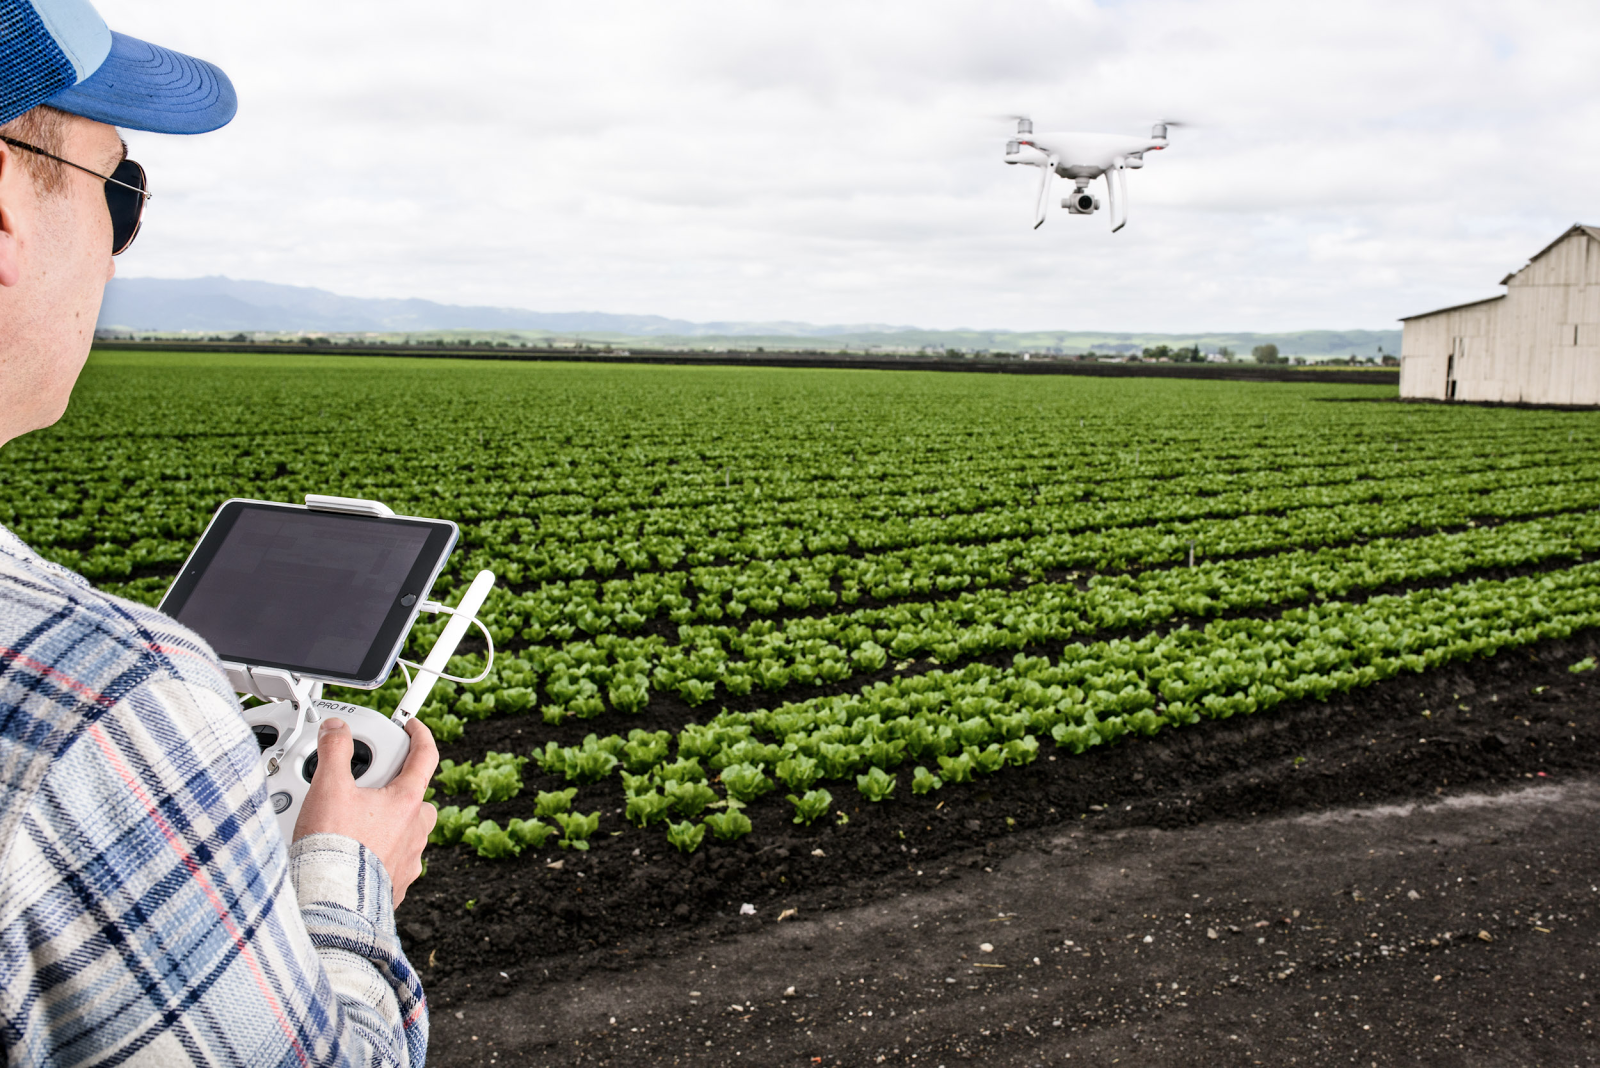 Introducing Fieldscanner: Real-time Drone Mapping is Here on